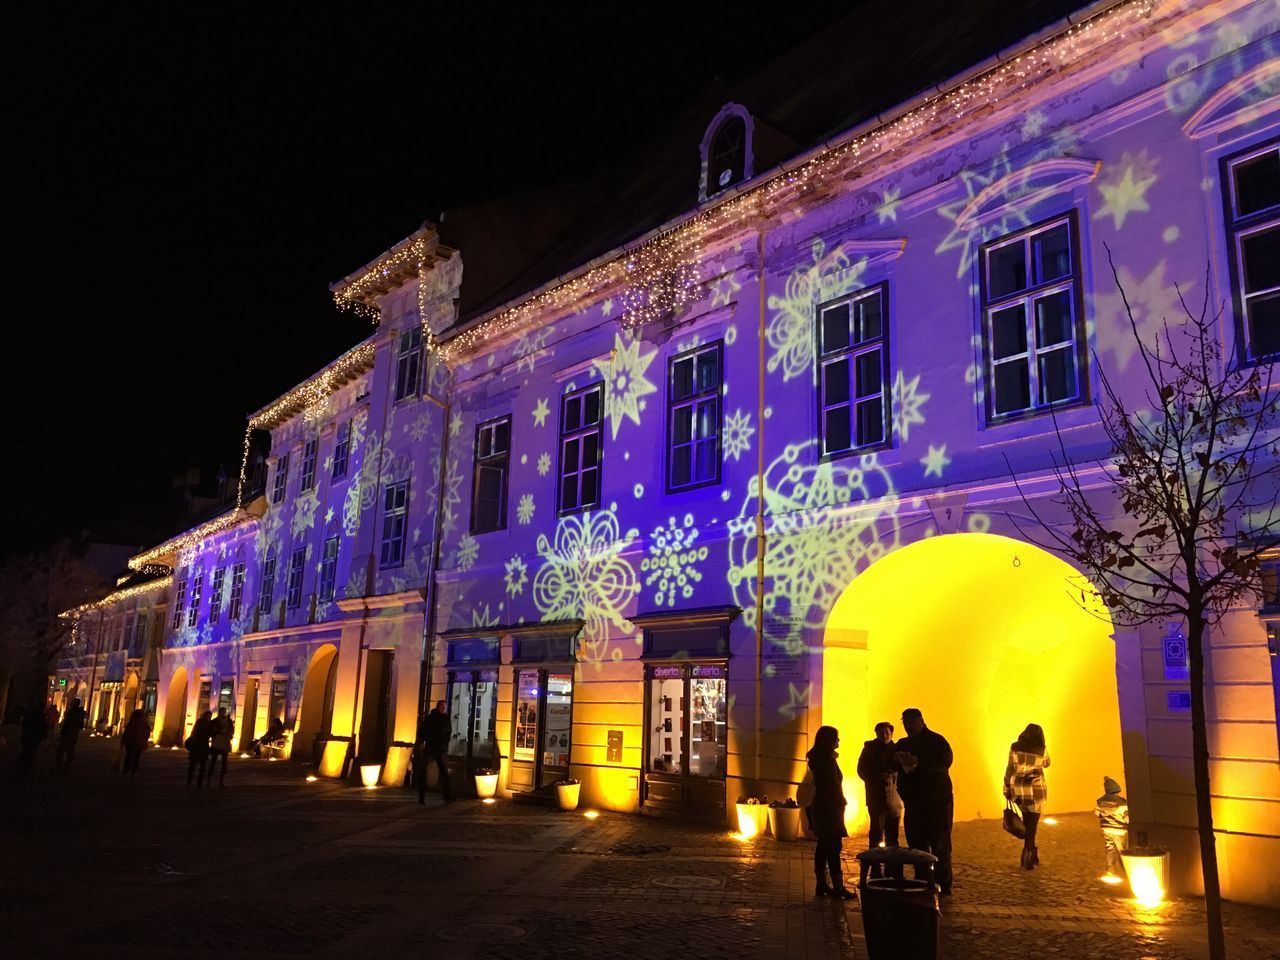 Adapted To The City Architecture Night Building Exterior Real People Built Structure City Illuminated Leisure Activity Outdoors Men